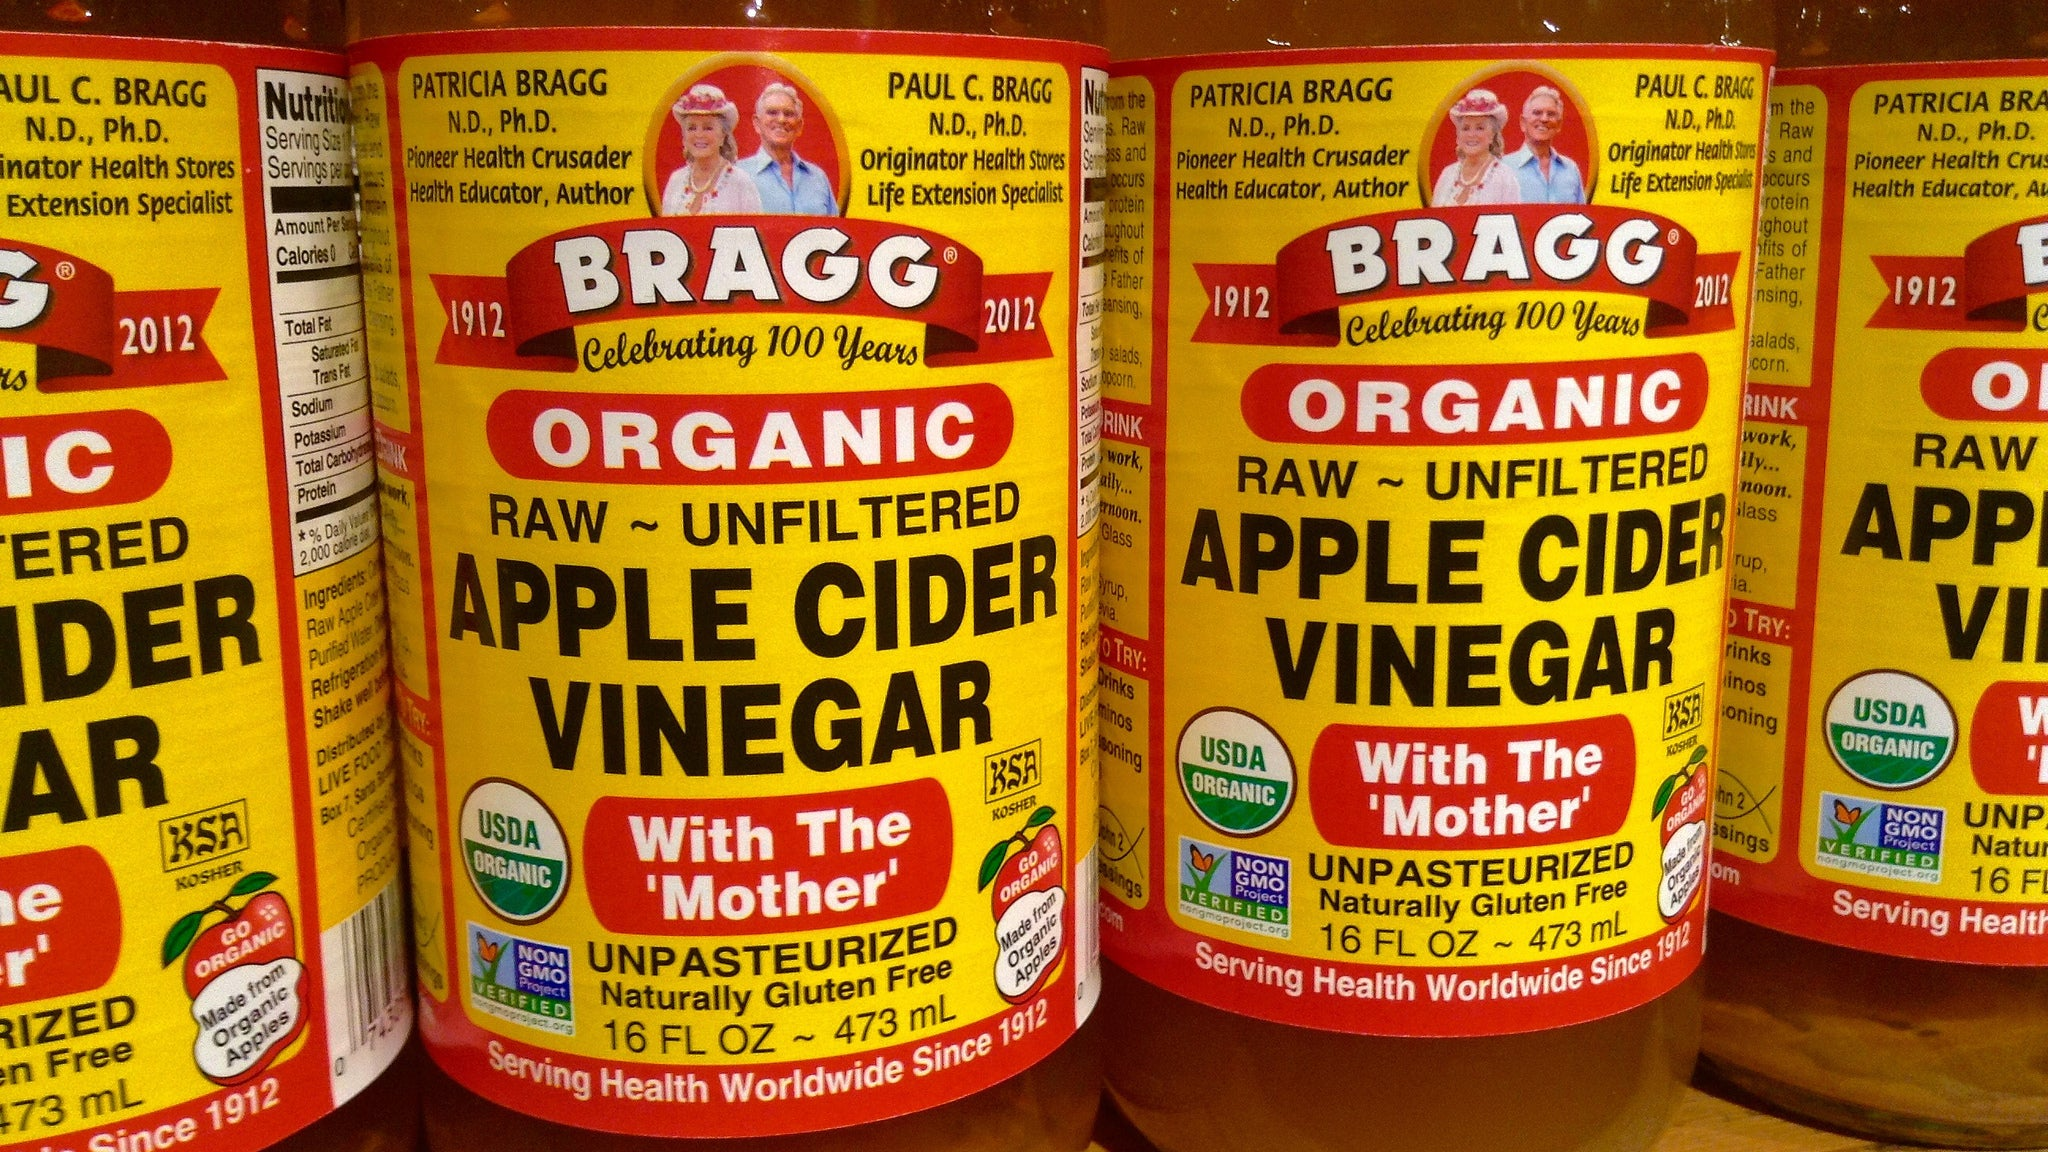 Apple Cider Vinegar Isn't The Miracle Elixir It's Cracked Up To Be